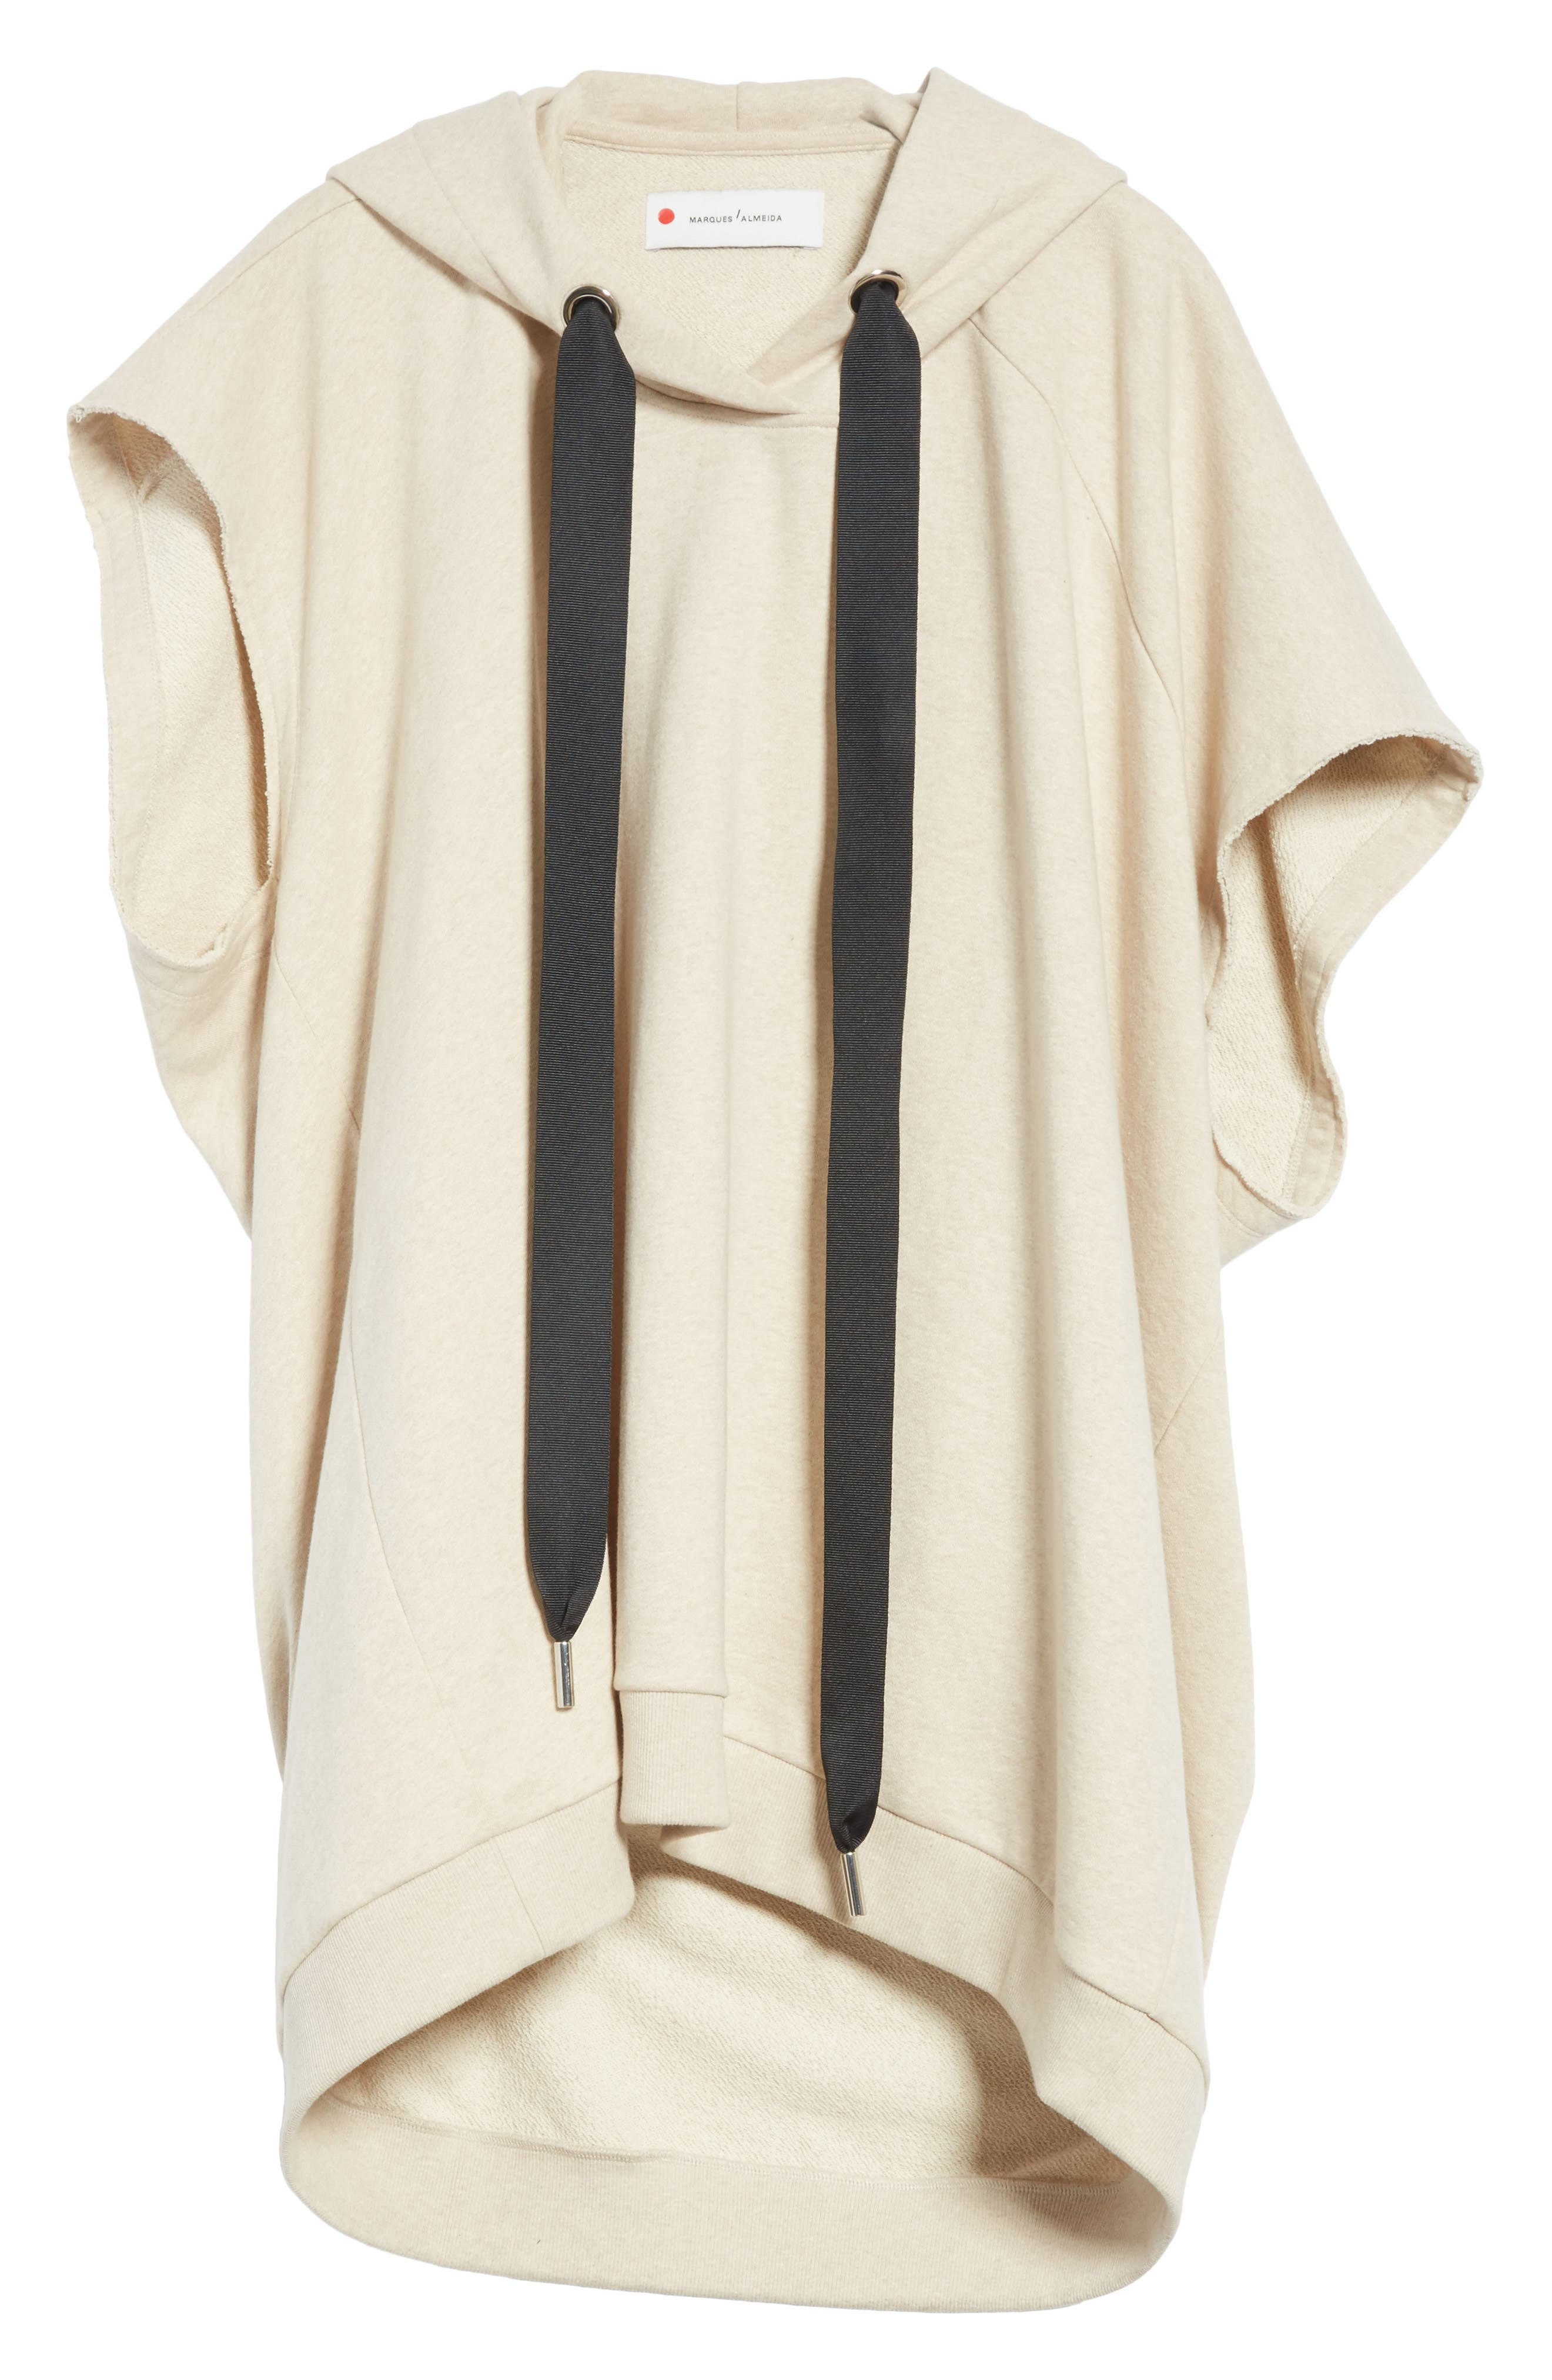 Marques'Almeida Asymmetrical Cap Sleeve Hoodie,                             Alternate thumbnail 7, color,                             Beige Melange